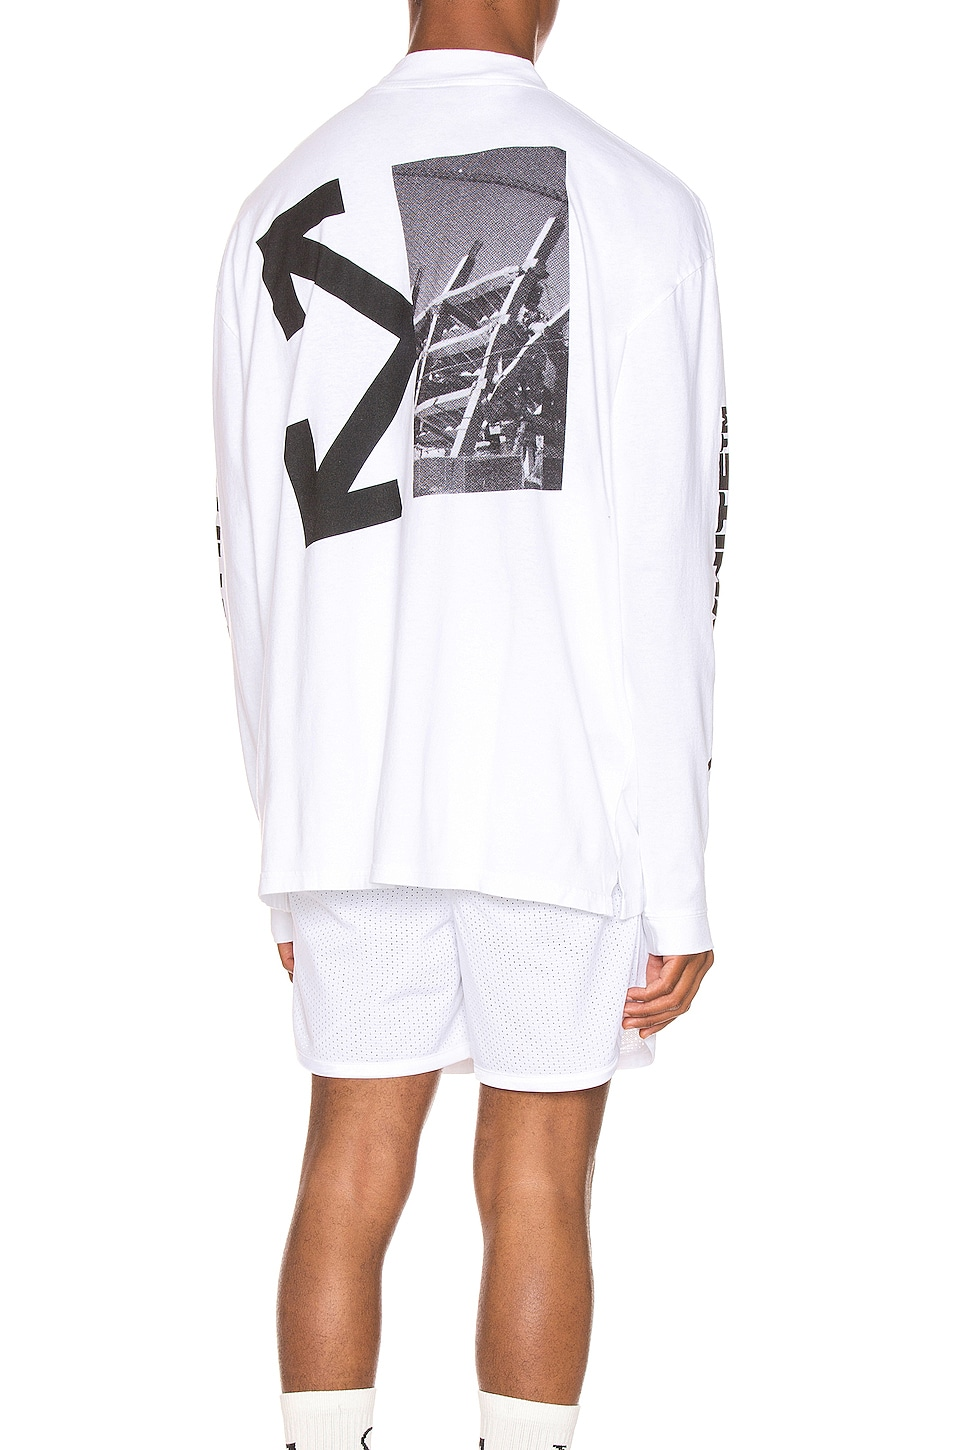 OFF-WHITE Splitted Arrows Over Mock Tee in White